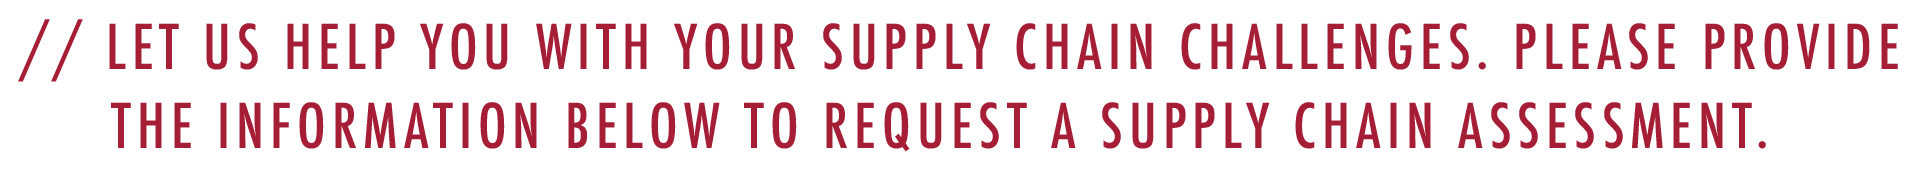 Let us help with your supply chain challenges. Please provide the information below to request a supply chain assessment.